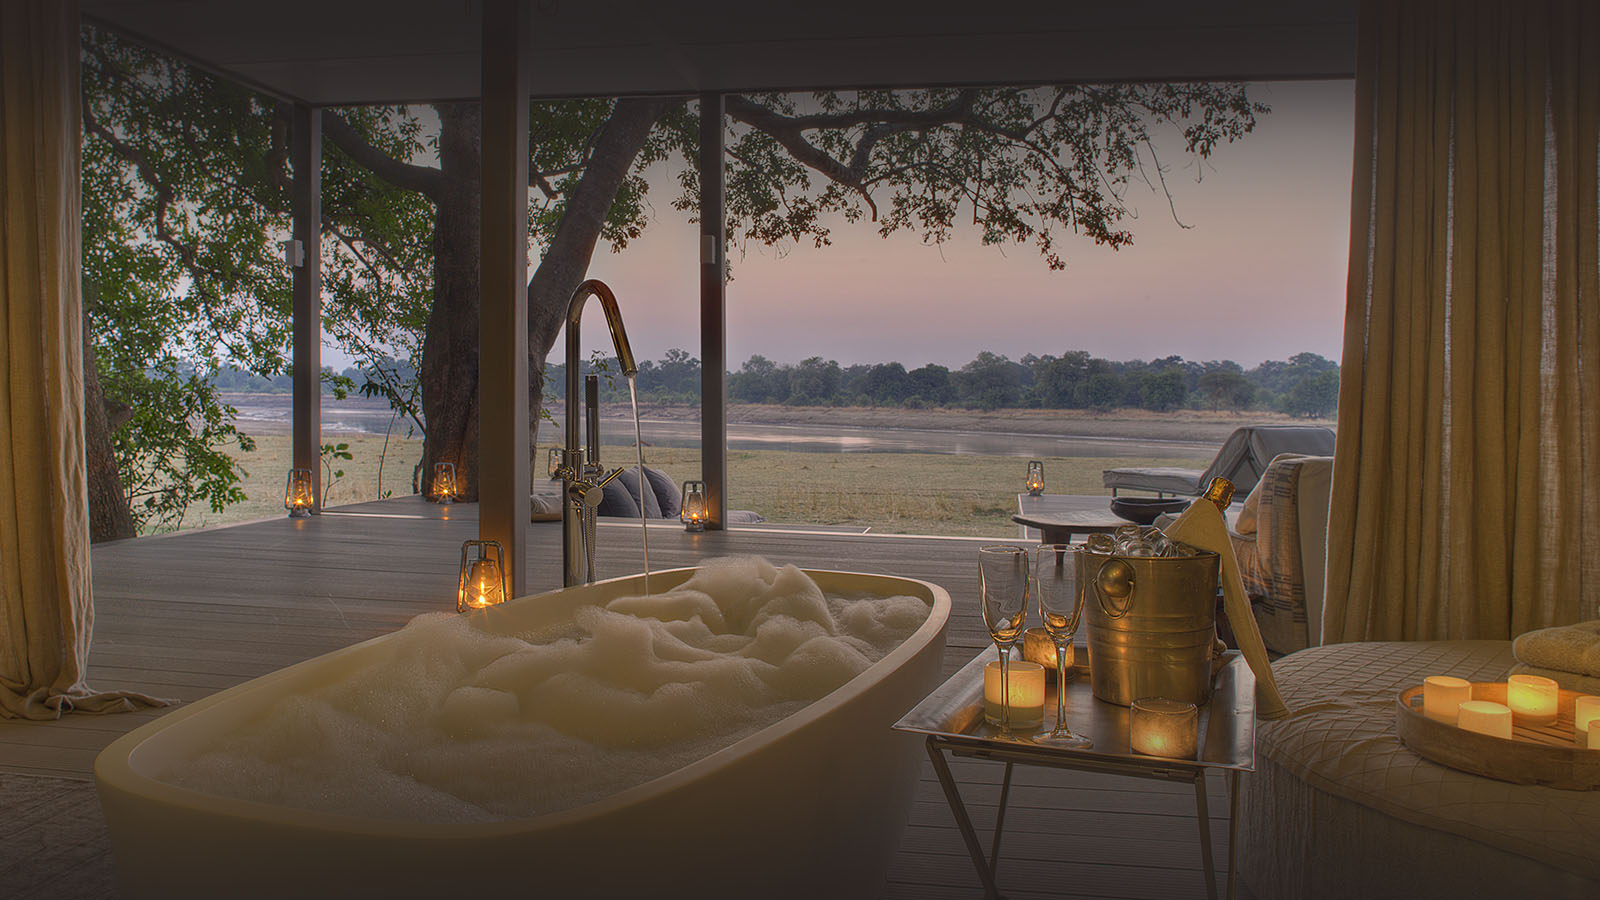 chinzombo-glamourous-lodge-zambia-in-style-tours-safari-packages-lodges-explore-south-luangwa-national-park-luxury-bath